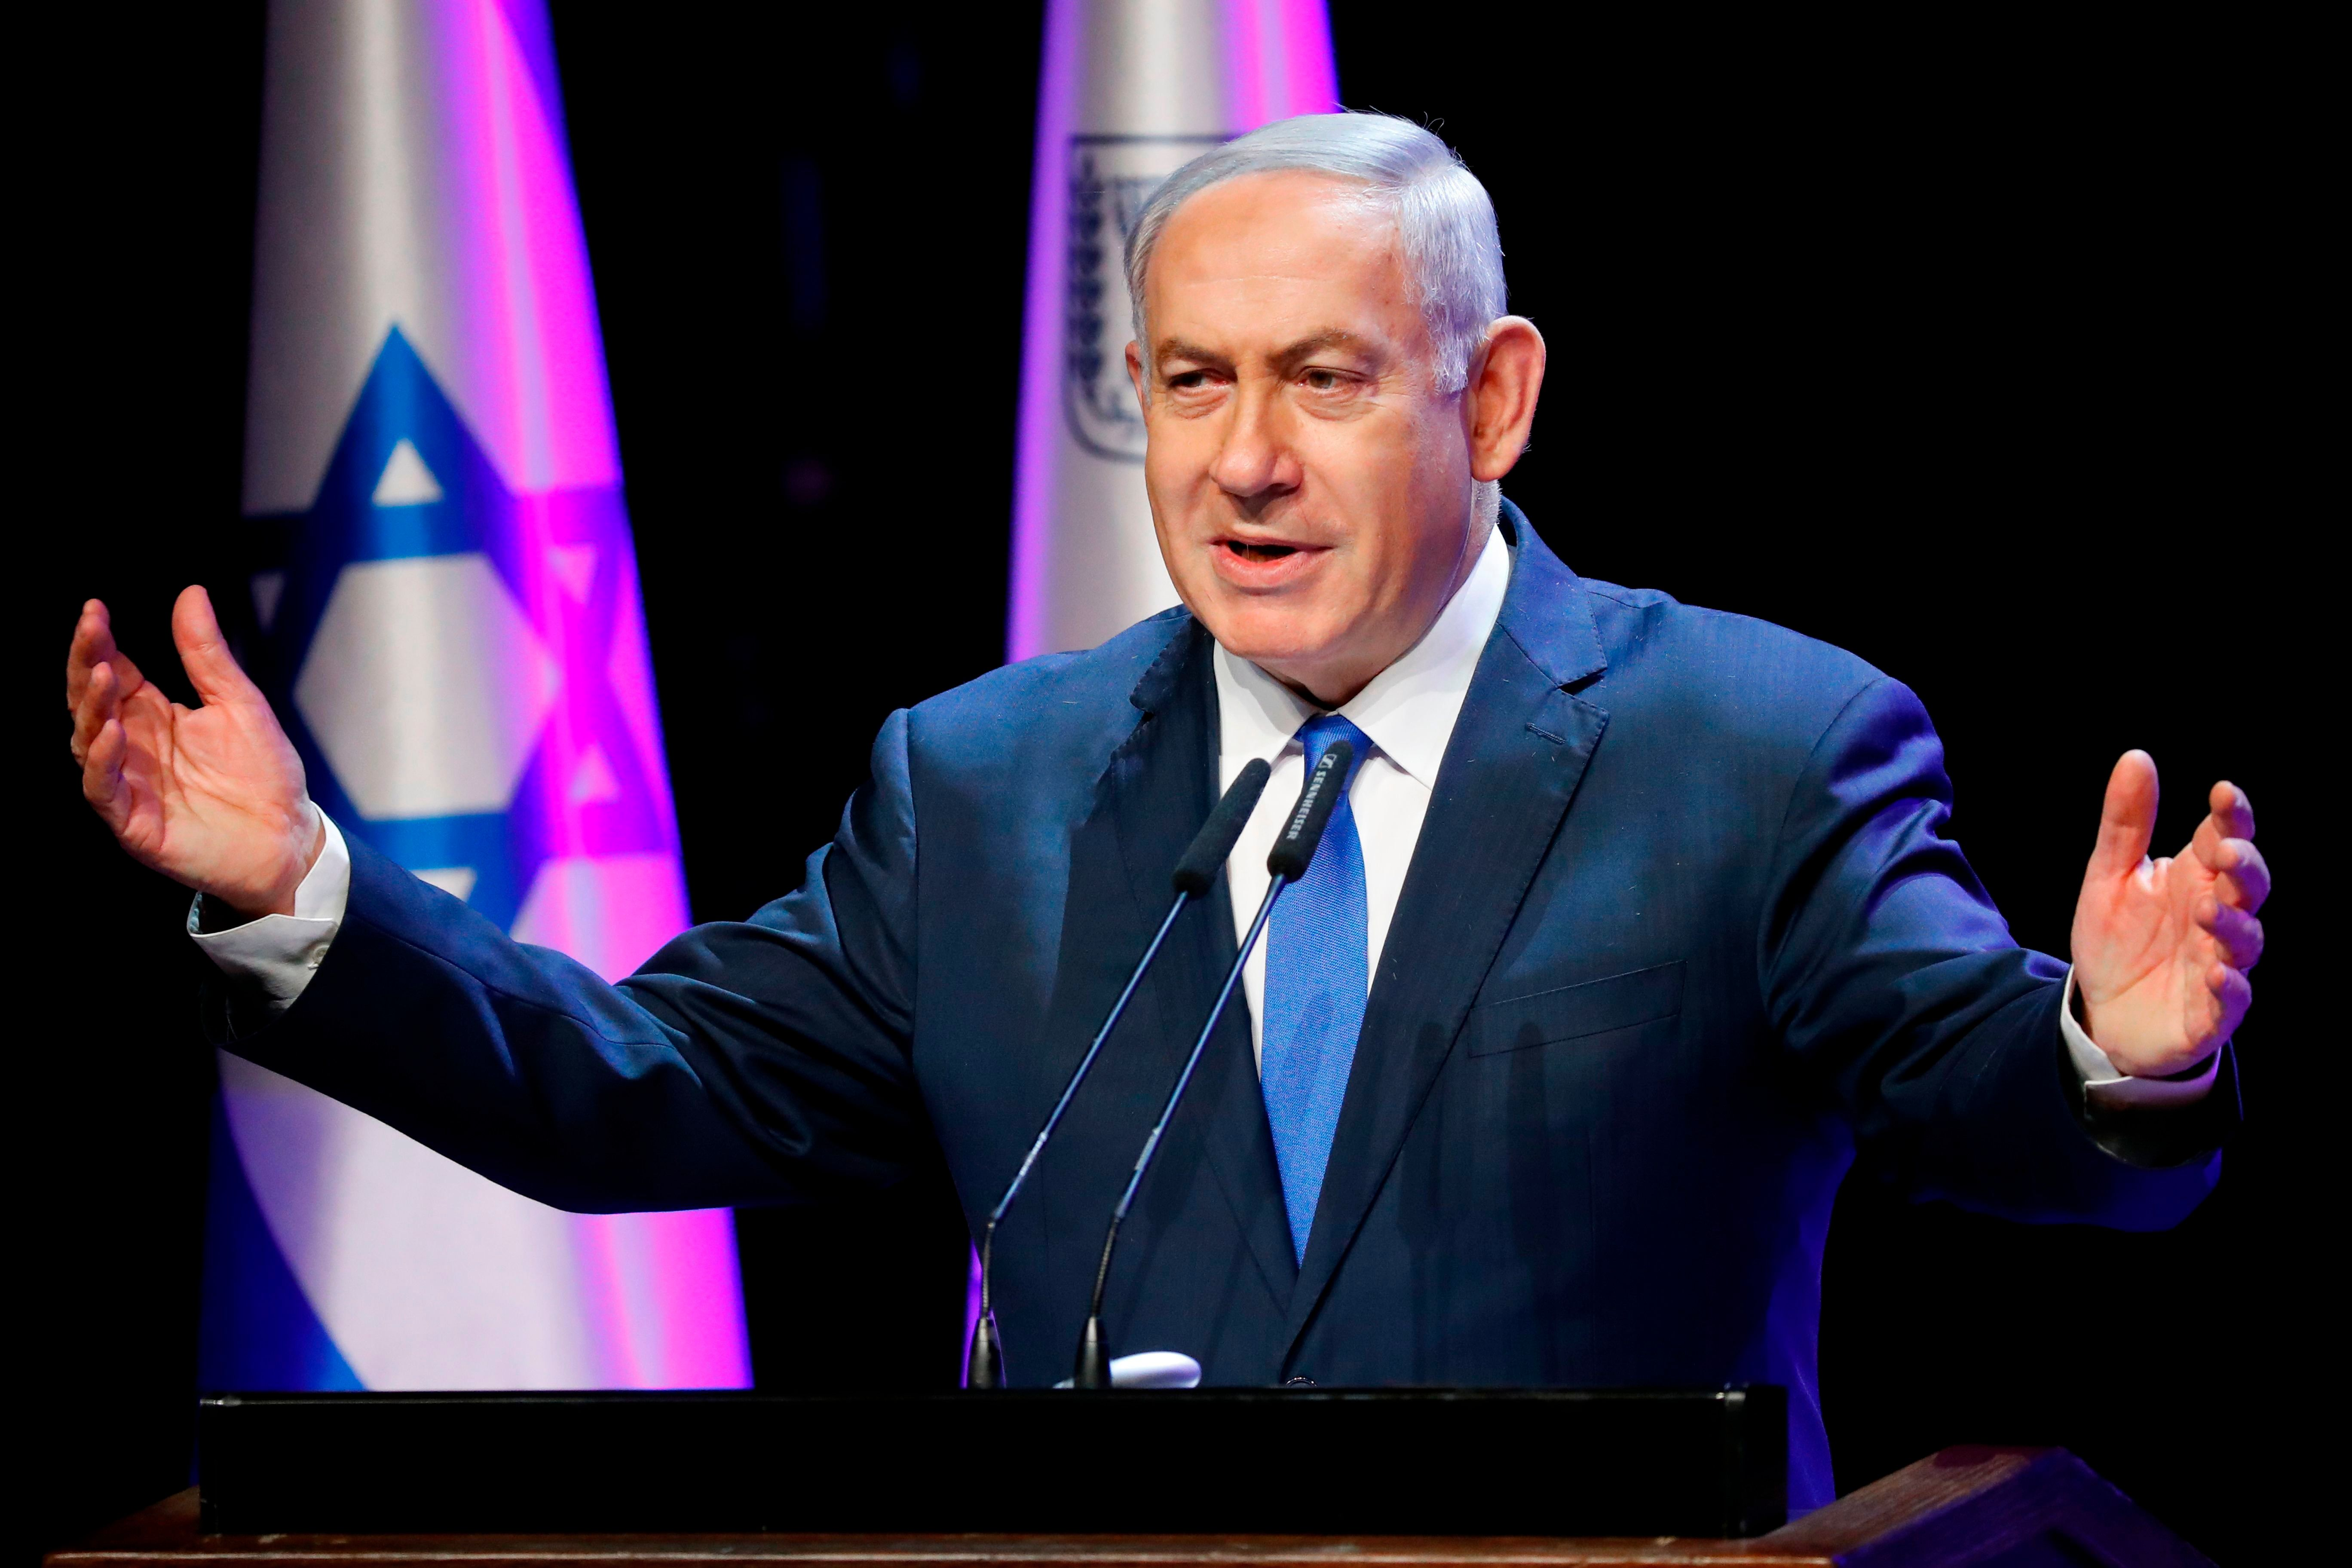 Israeli Prime Minister Benjamin Netanyahu addresses the annual health conference in Tel Aviv on March 27, 2018. / AFP PHOTO / JACK GUEZ        (Photo credit should read JACK GUEZ/AFP/Getty Images)